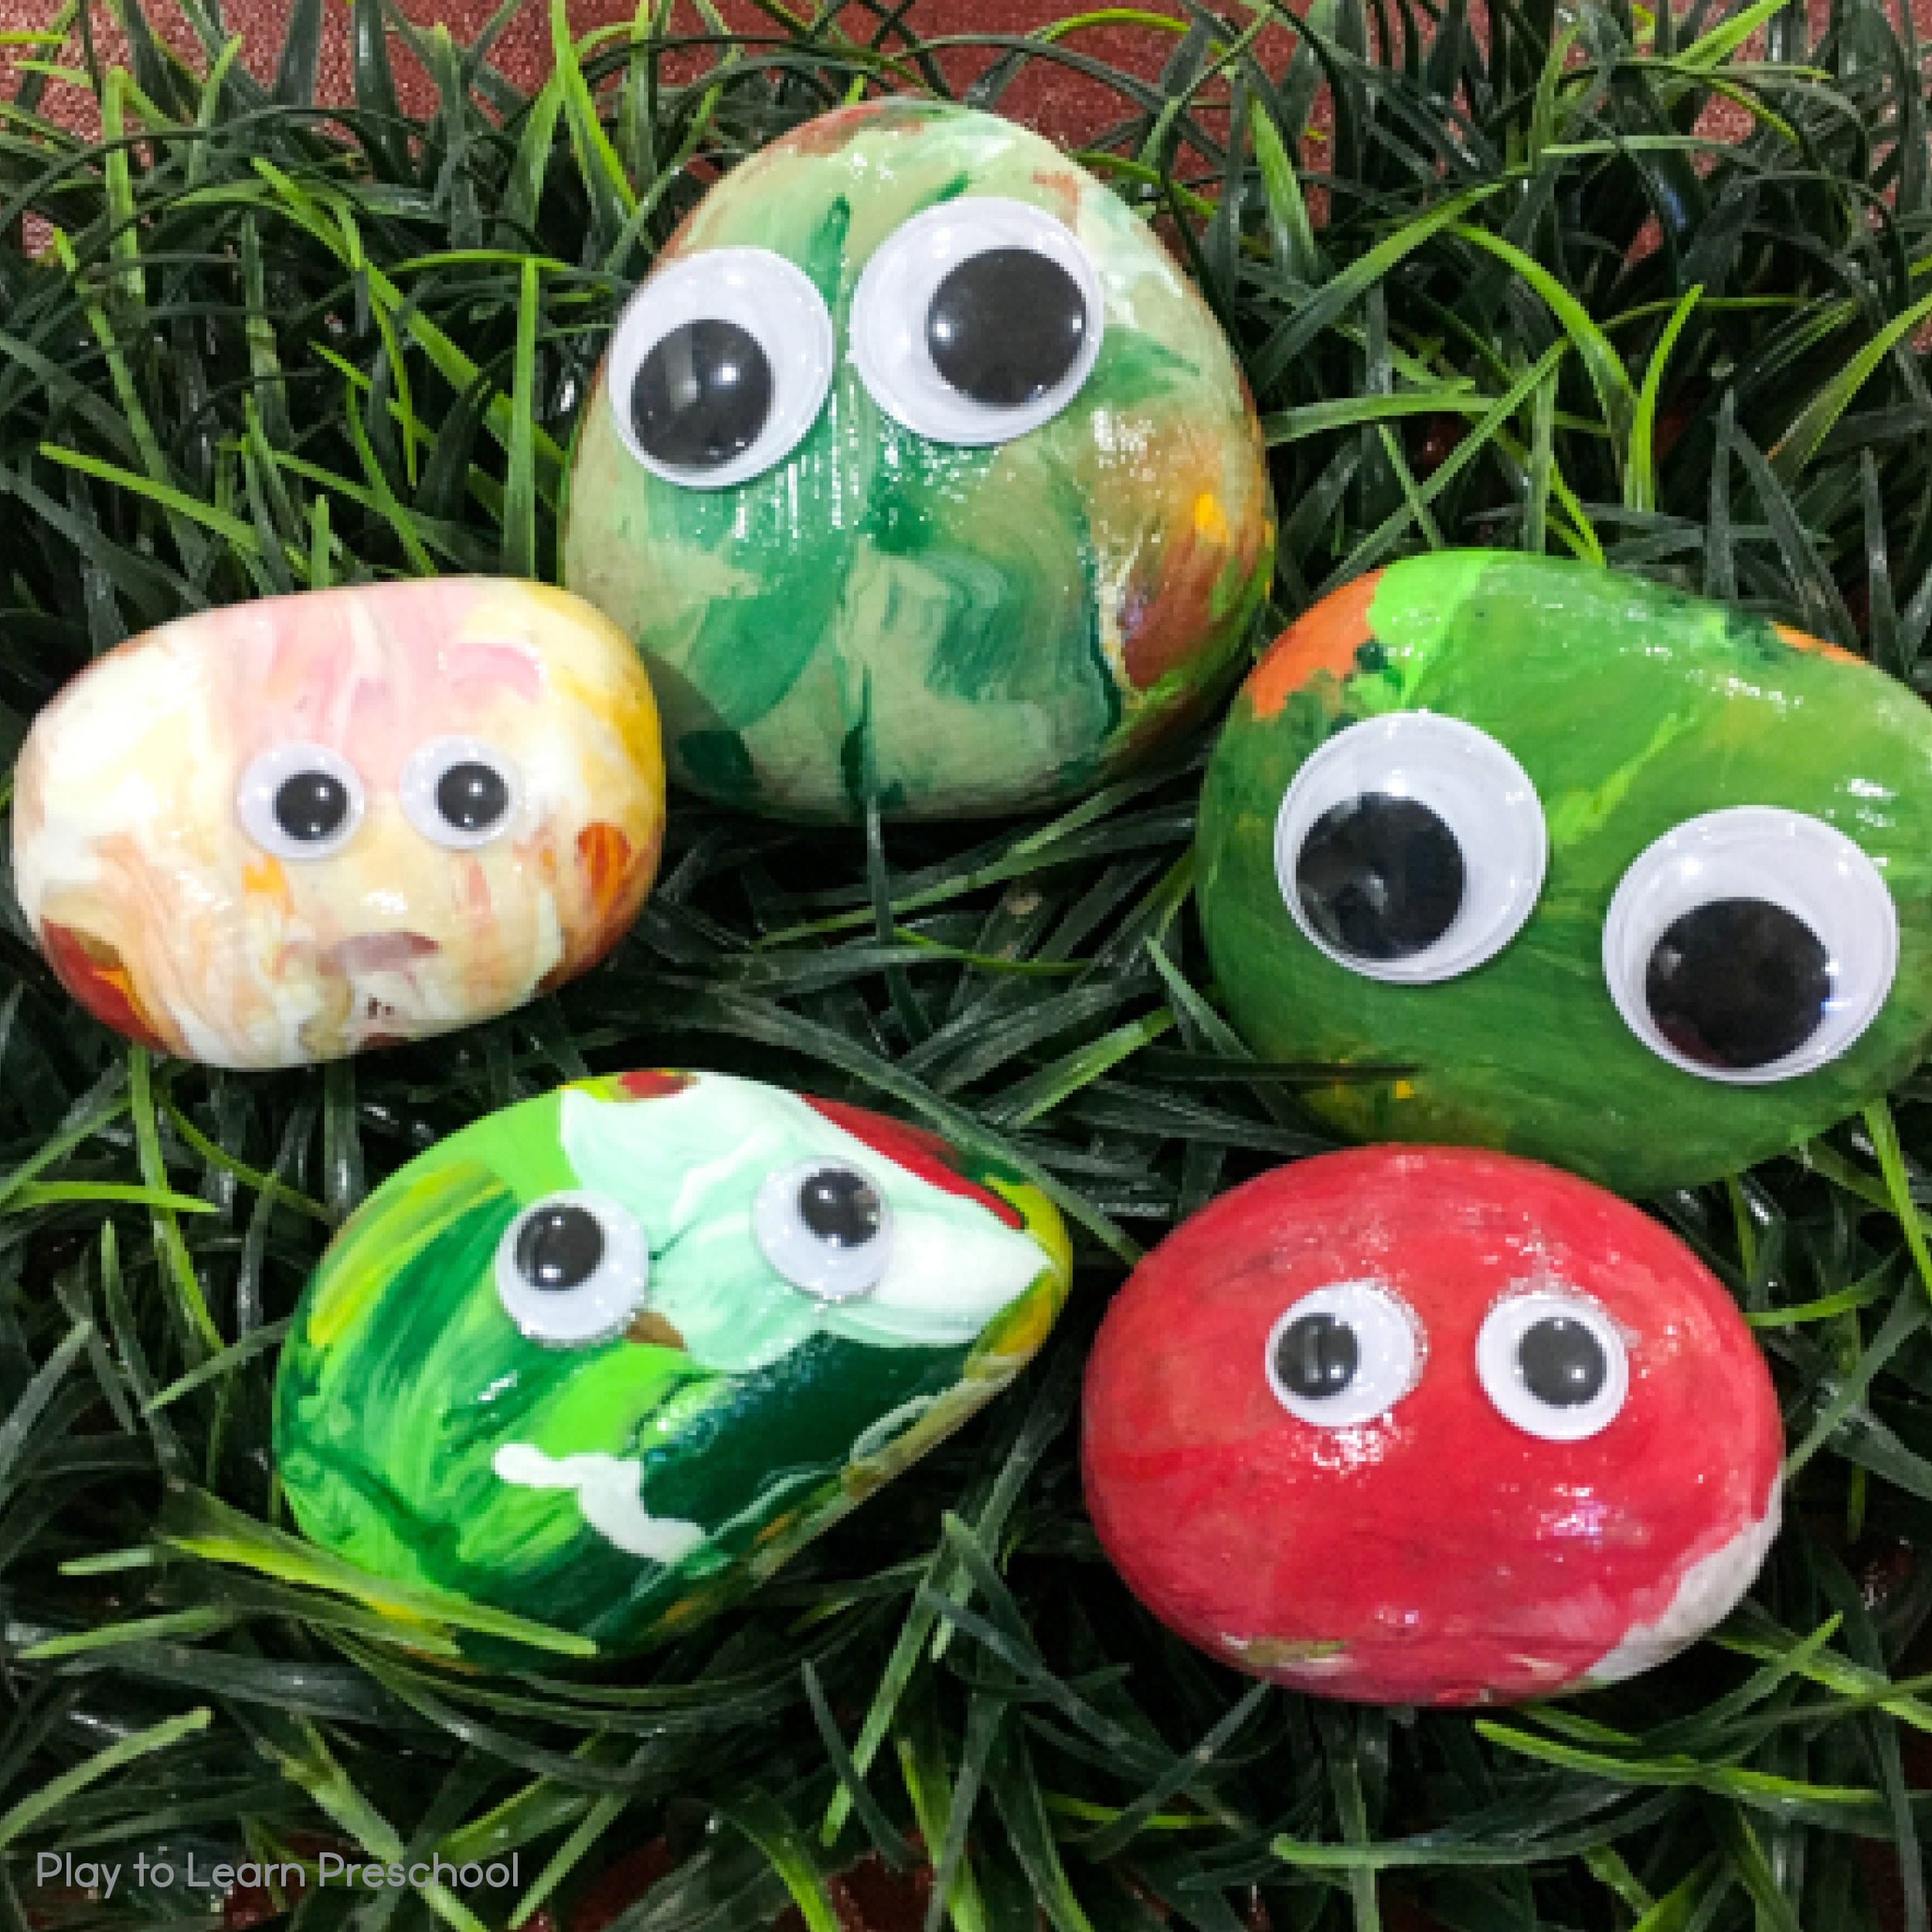 Pet Rocks Process Art Project for Preschoolers